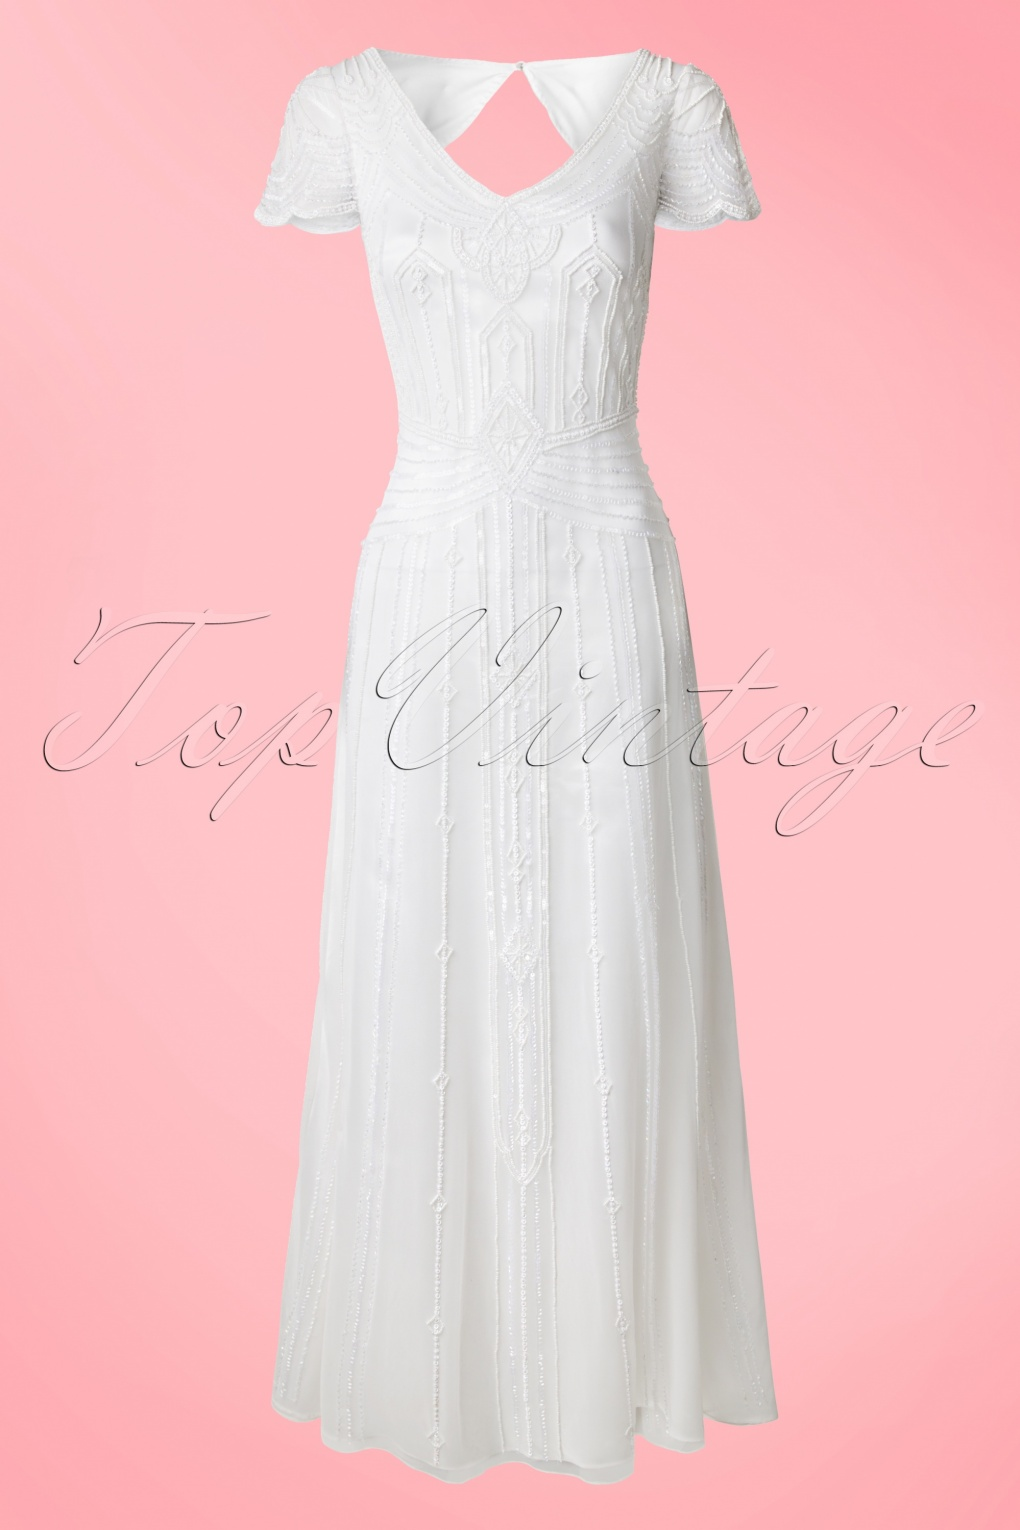 Vintage Inspired Wedding Dresses 20s Phoebe Embellished Maxi Dress in White £122.07 AT vintagedancer.com